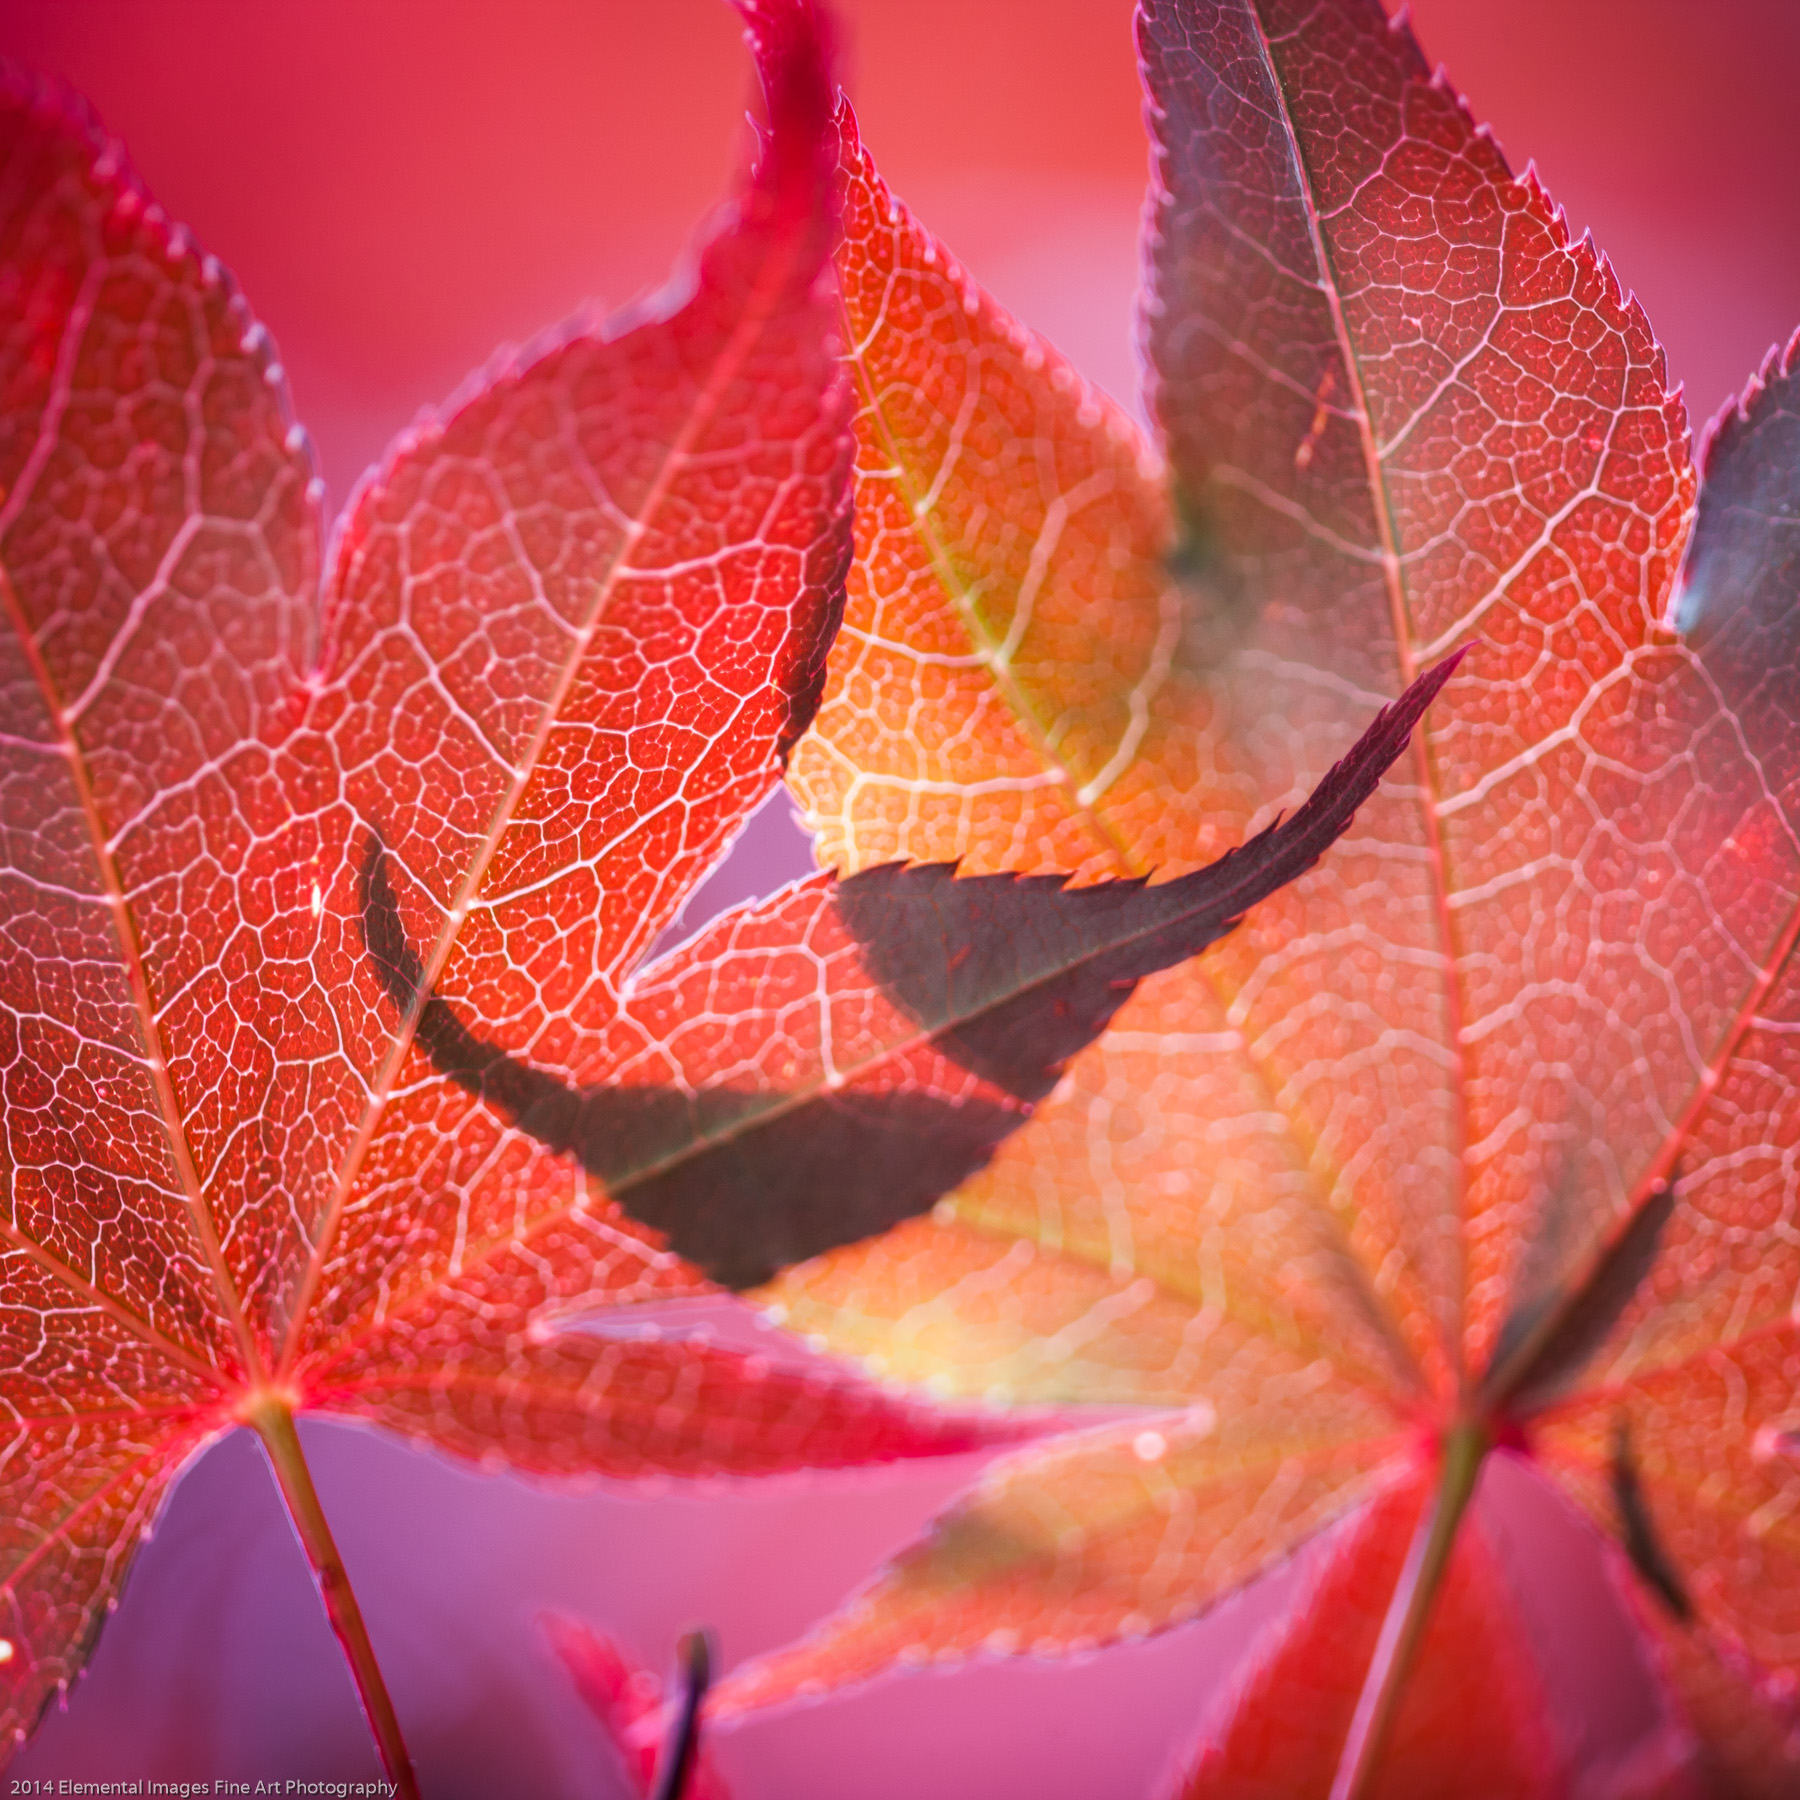 Leaves LXXXVIII | Portland | OR | USA - © 2014 Elemental Images Fine Art Photography - All Rights Reserved Worldwide